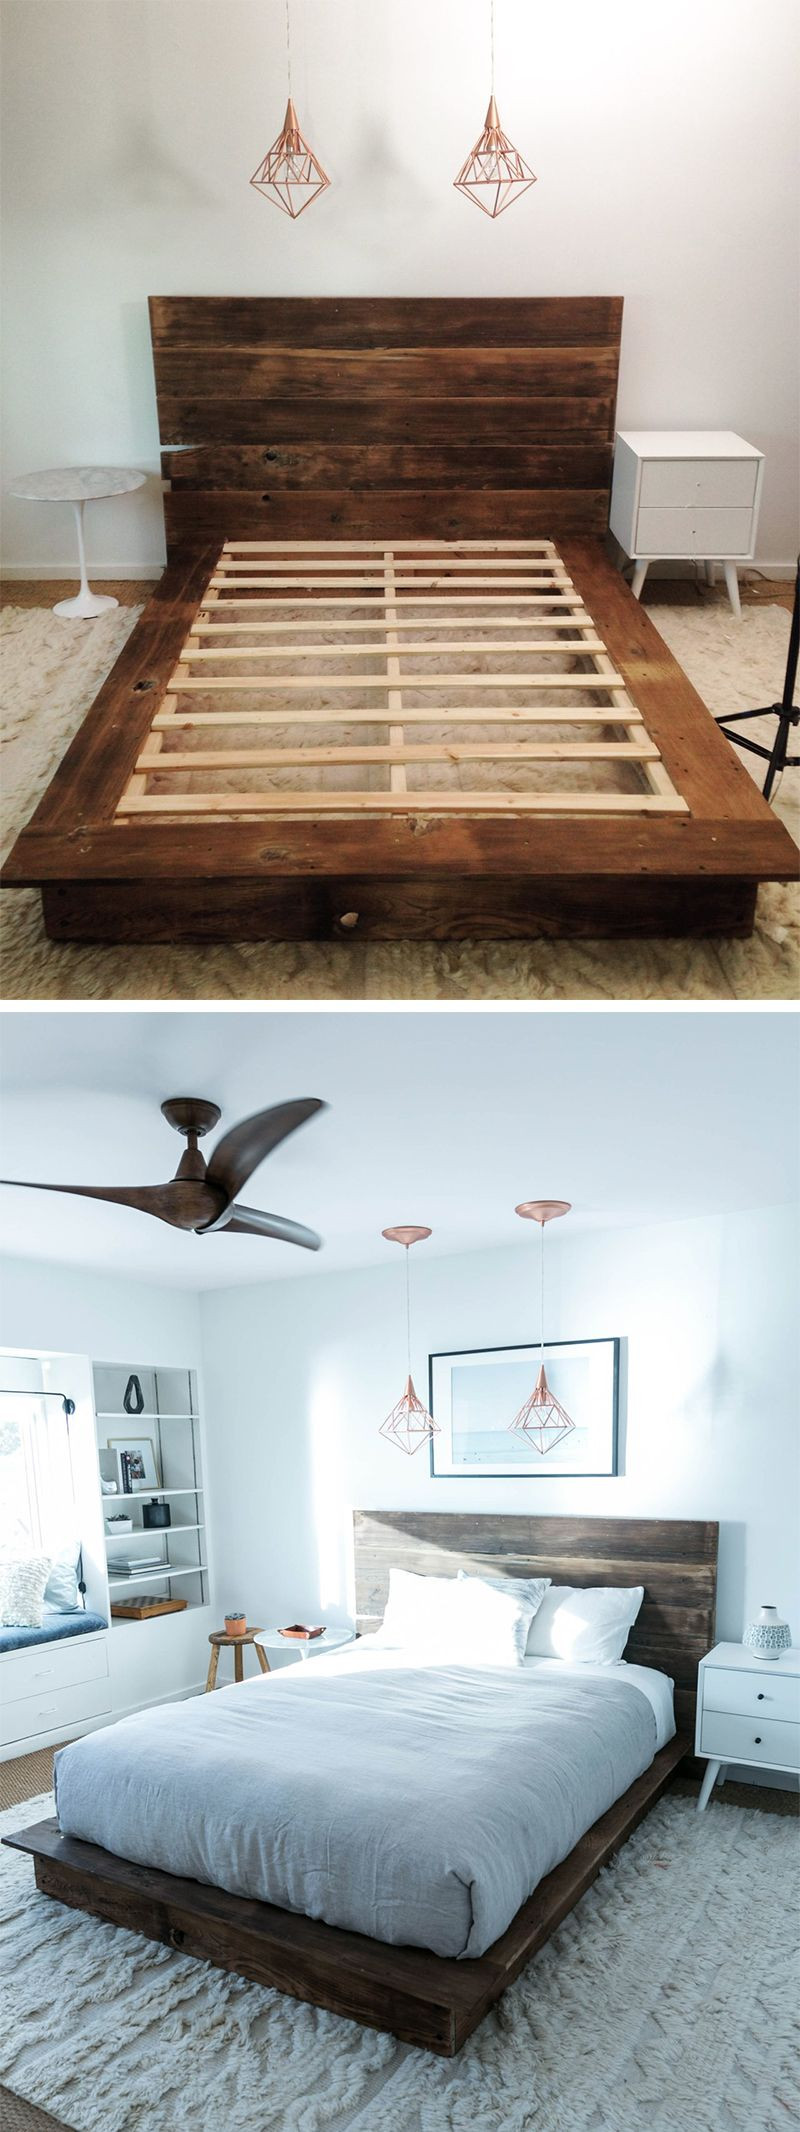 Best ideas about DIY Wood Beds . Save or Pin DIY Reclaimed Wood Platform Bed Now.